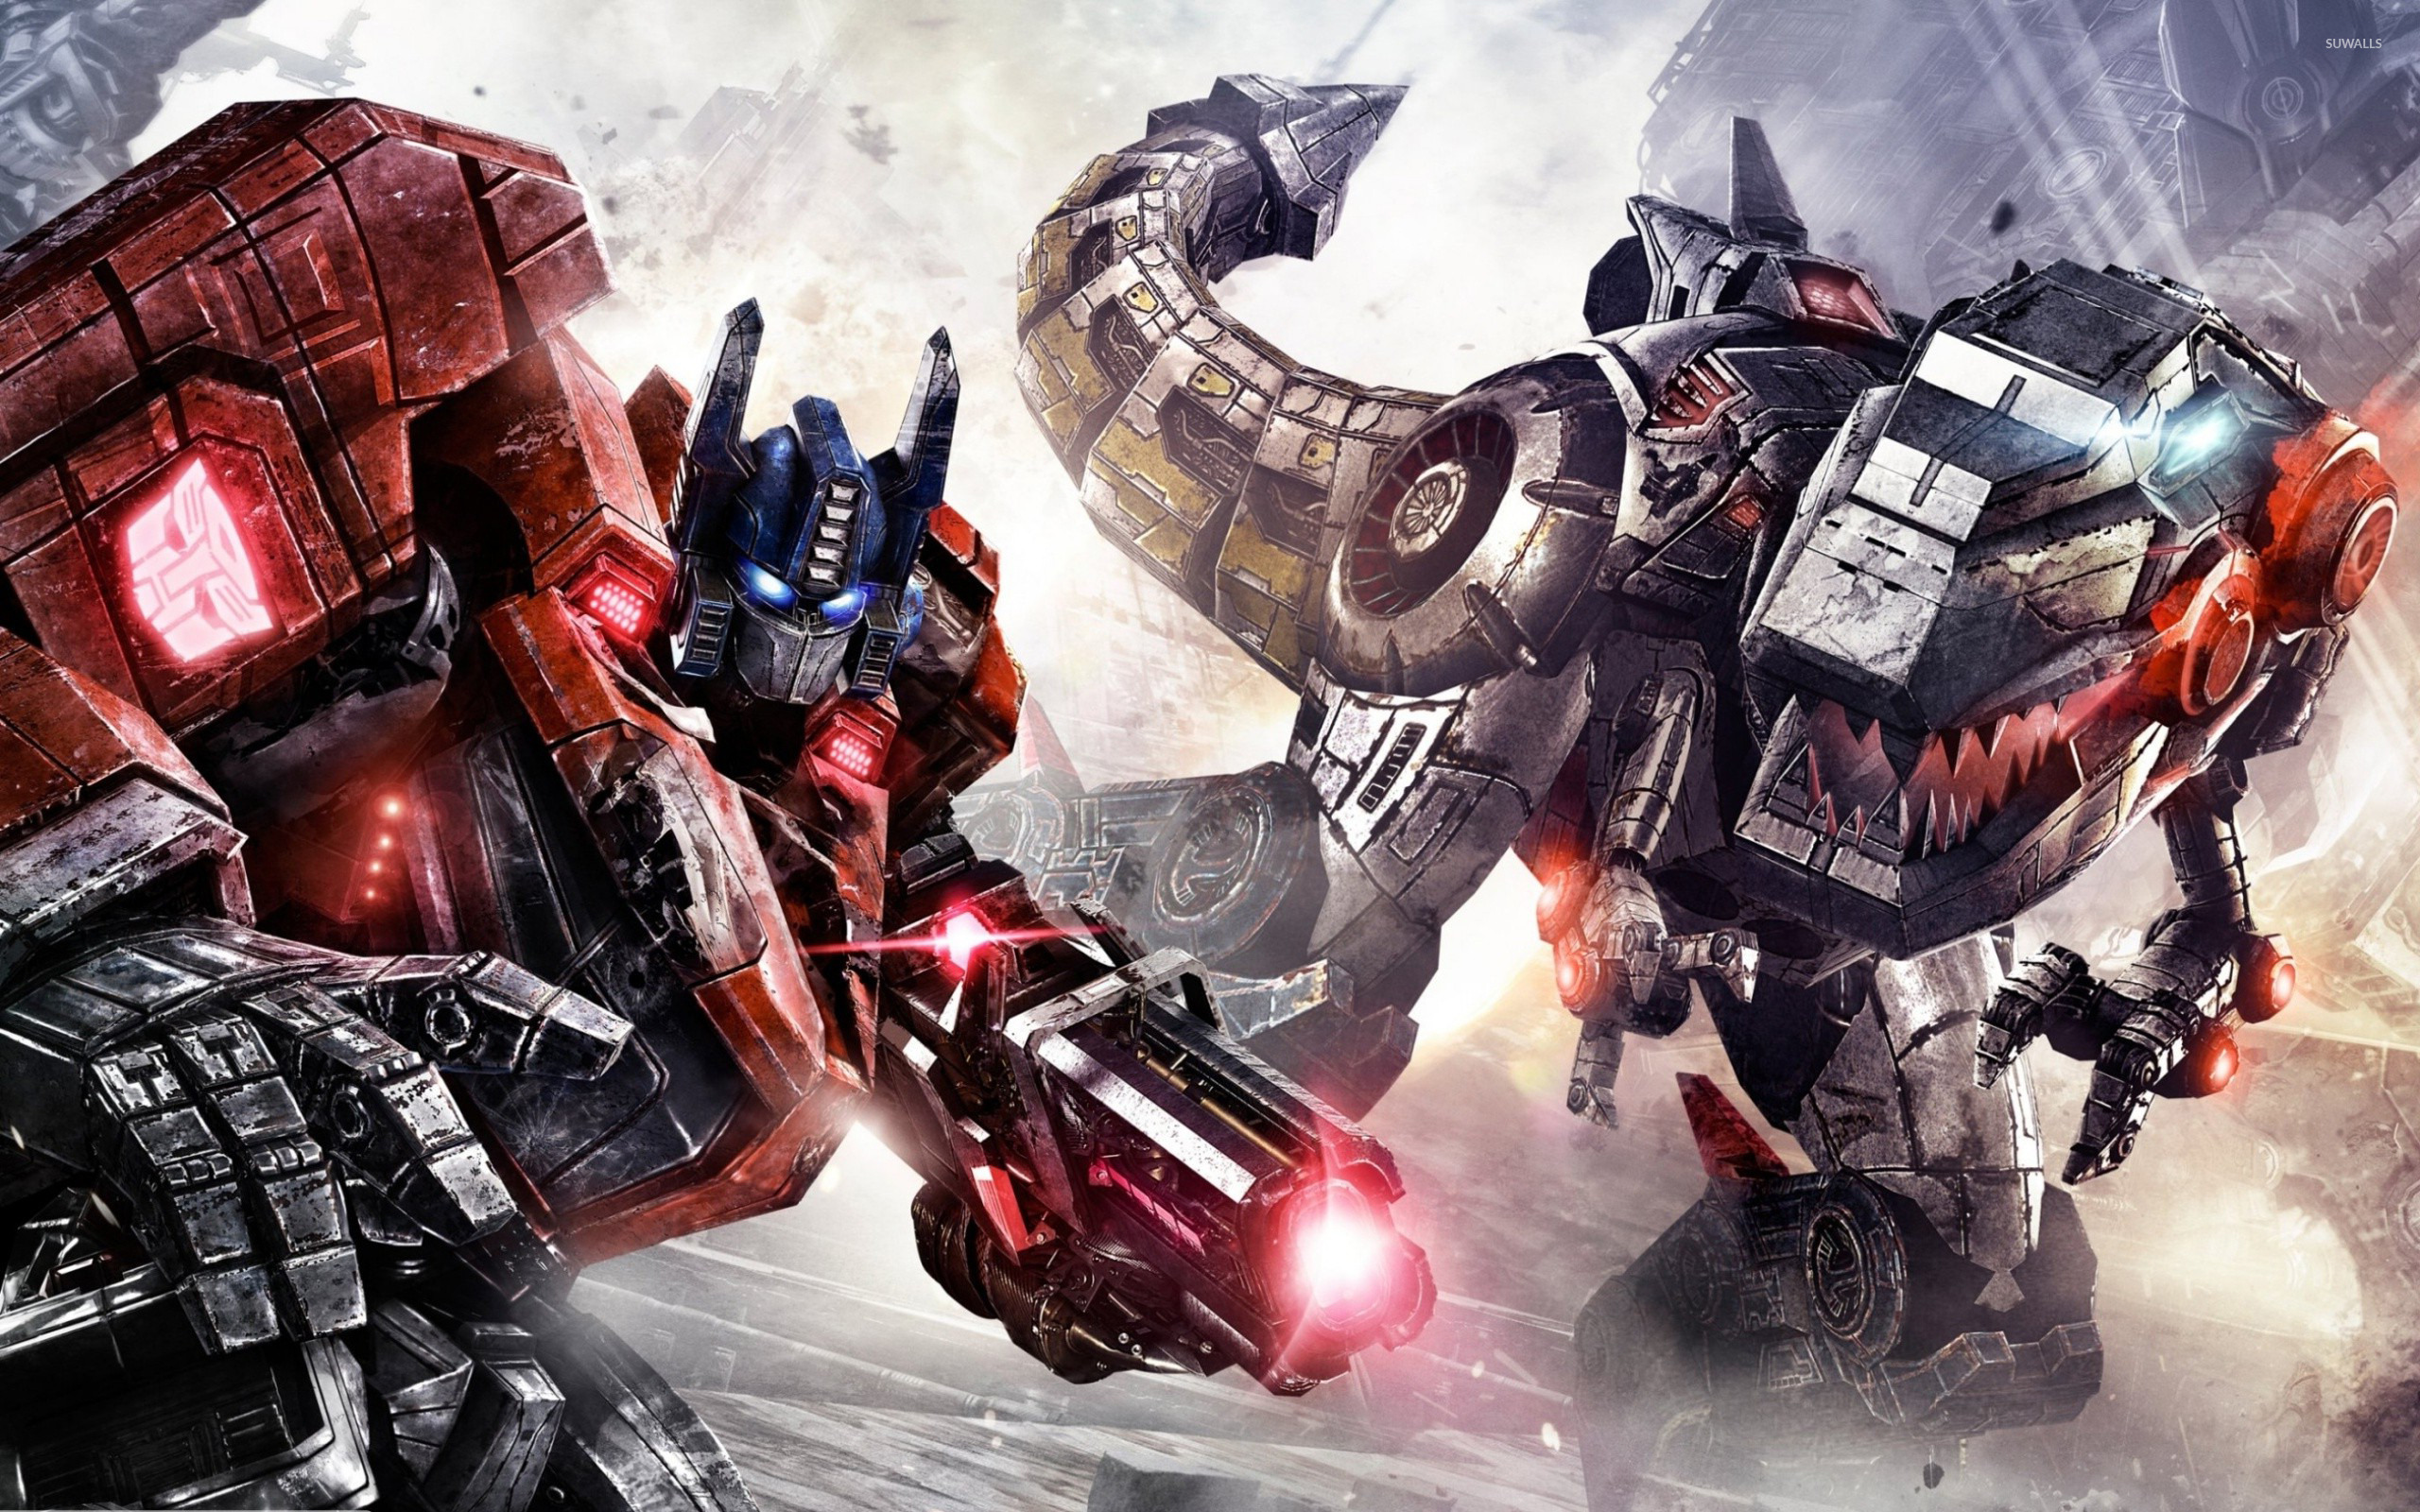 Transformers Fall Of Cybertron 2 Wallpaper Game Wallpapers 18326